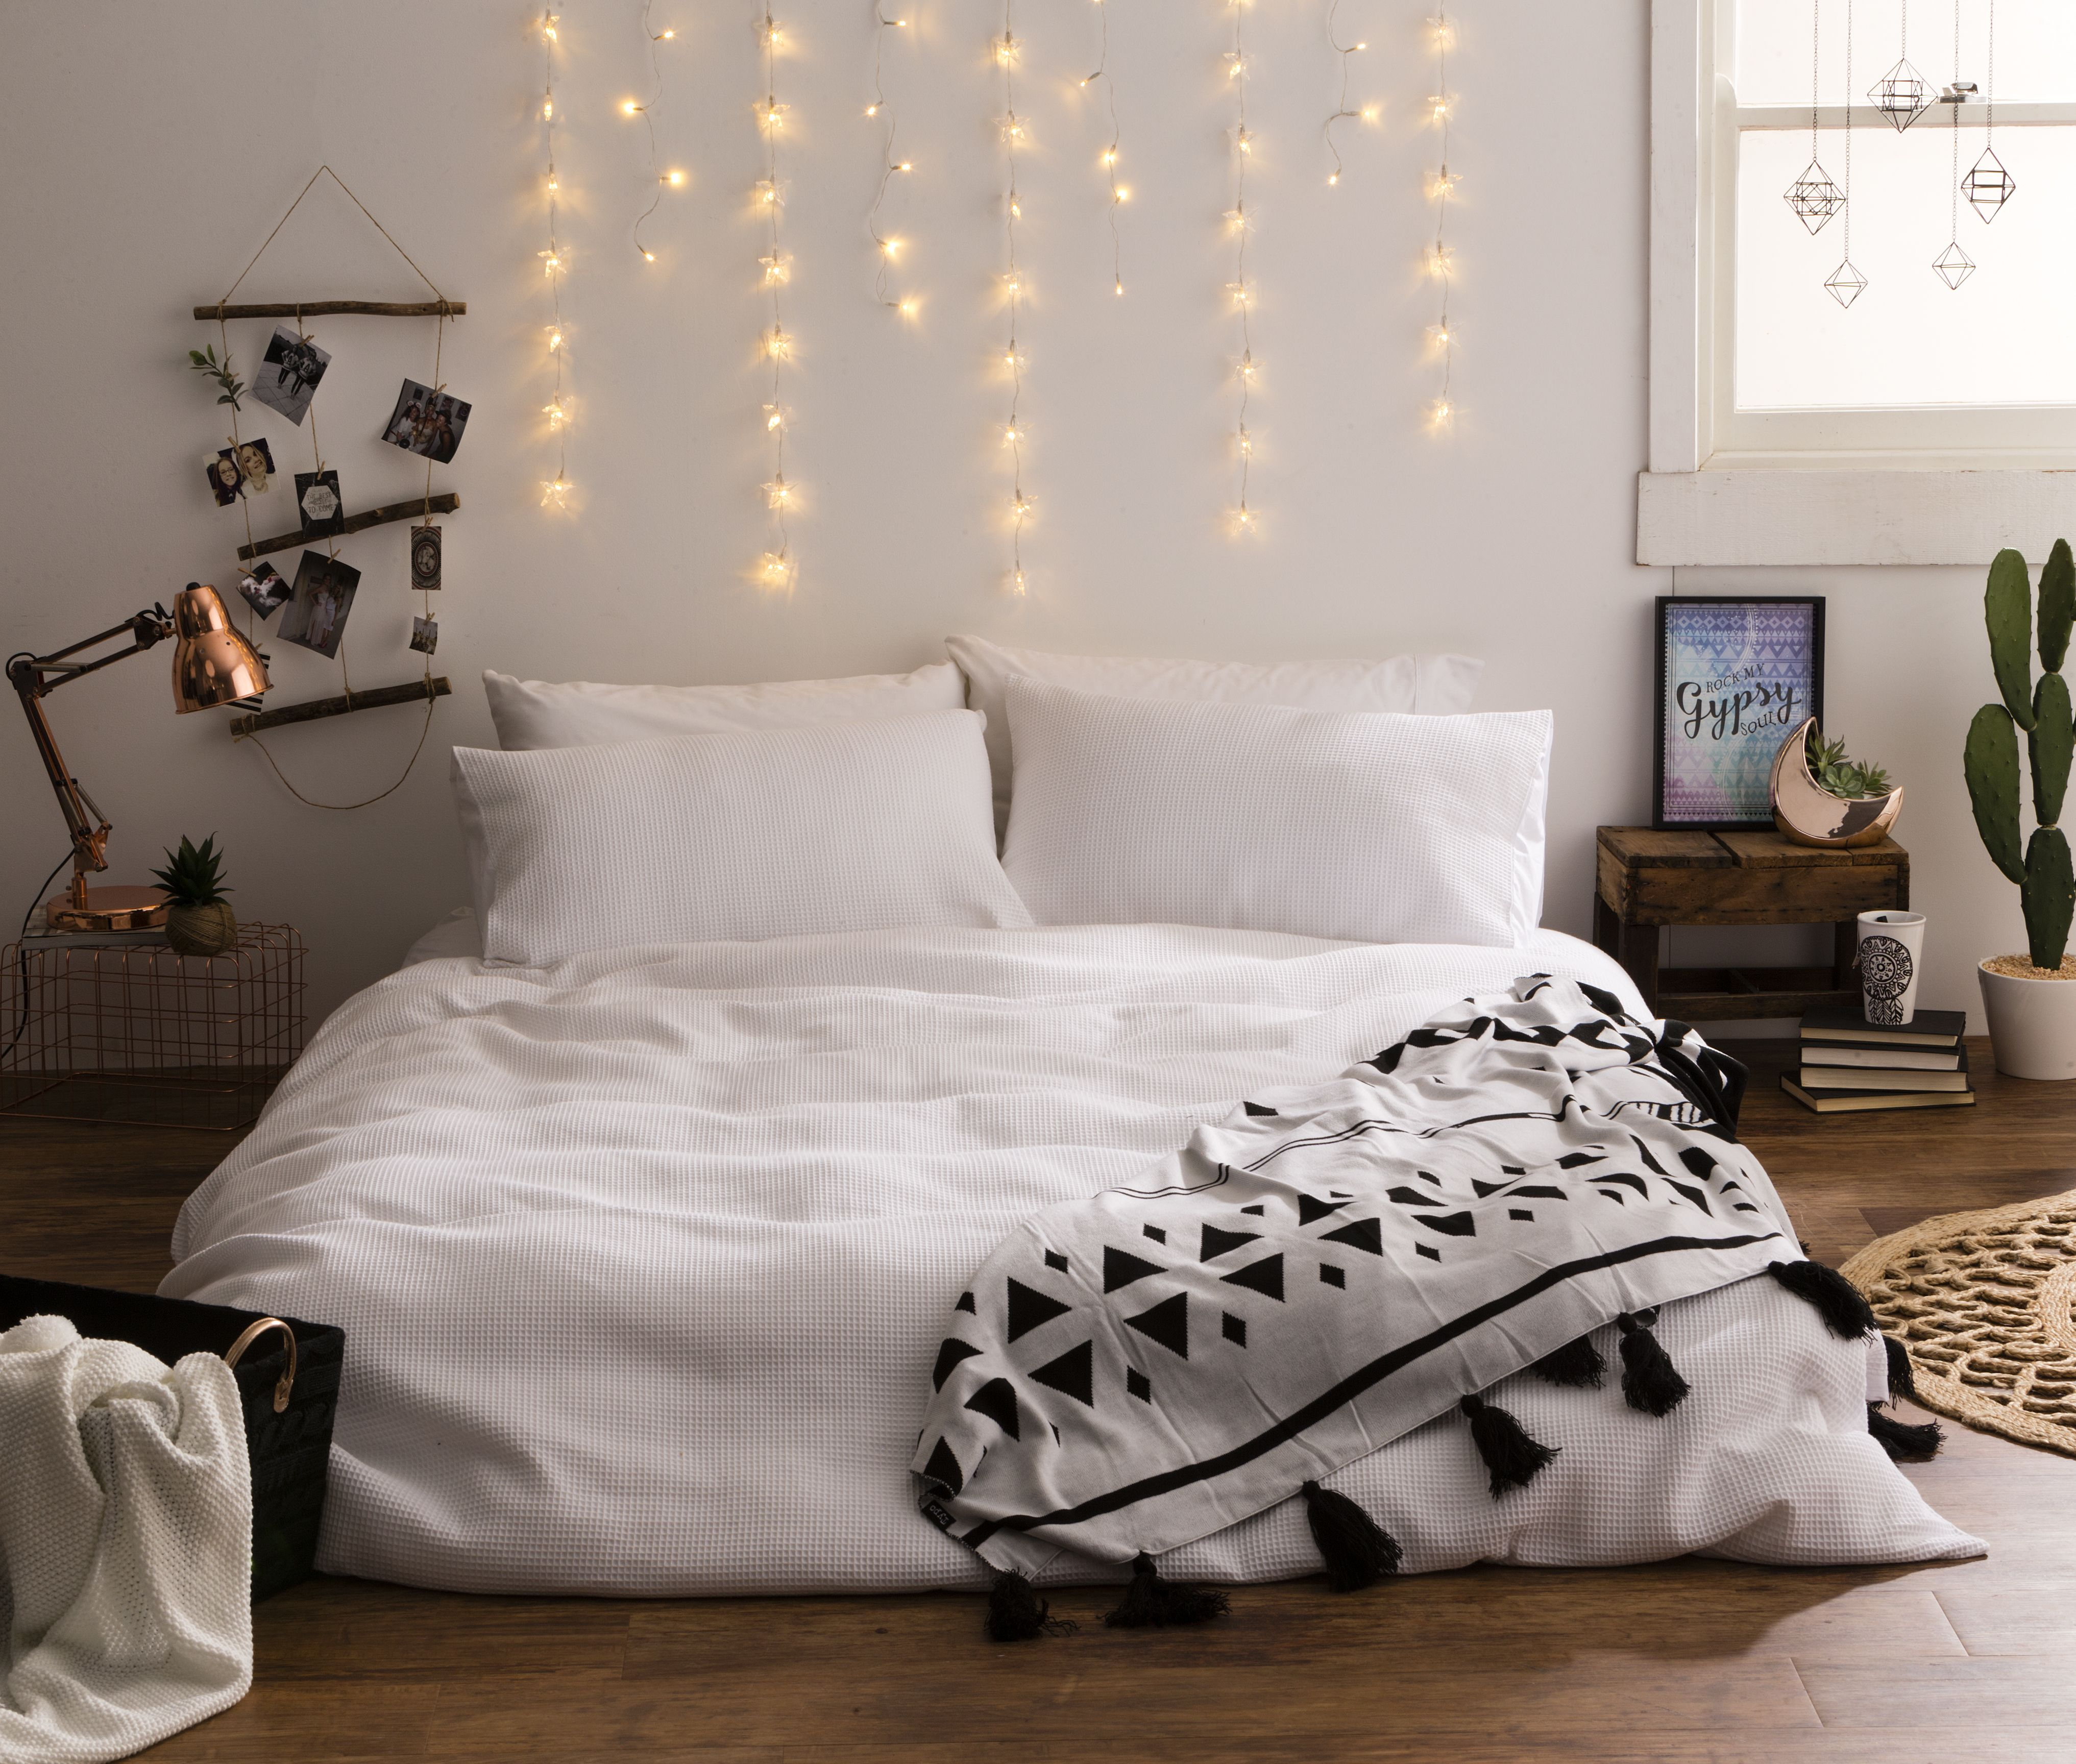 Go Back To The Bedroom With The Cozy Warm Typo Curtain Lights Home Edit Lighting